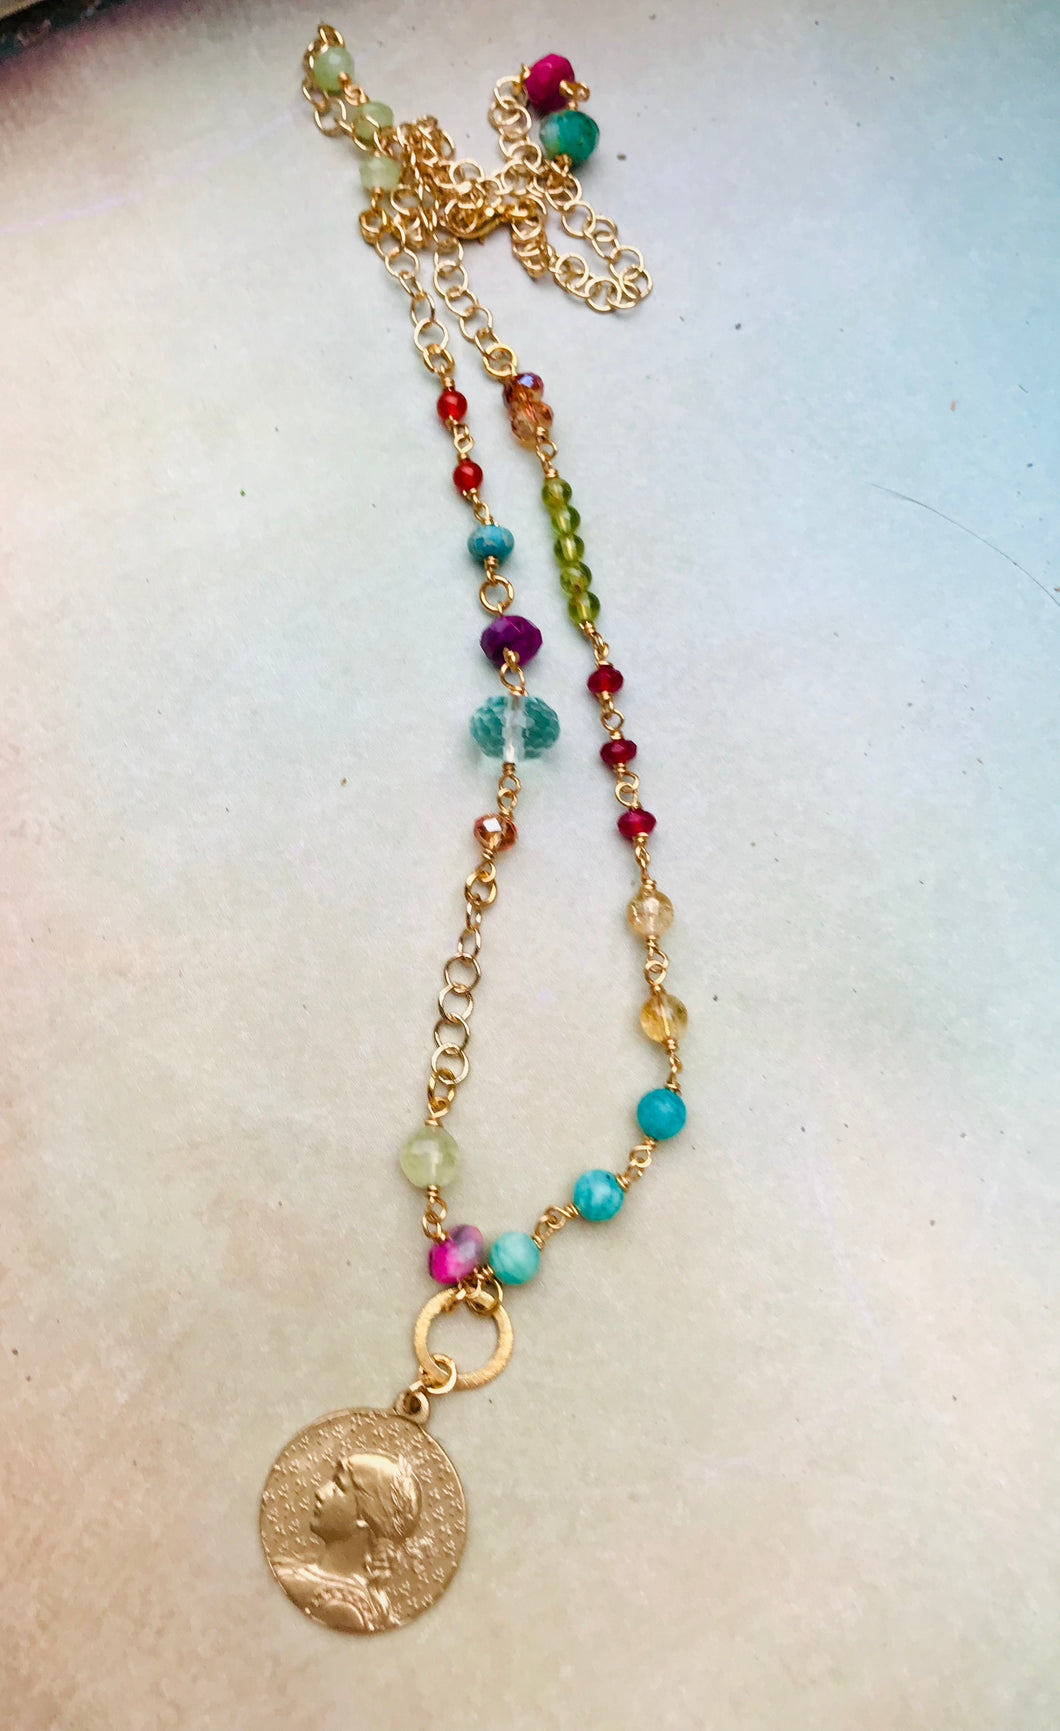 Joan of Arc Gemstone Necklace